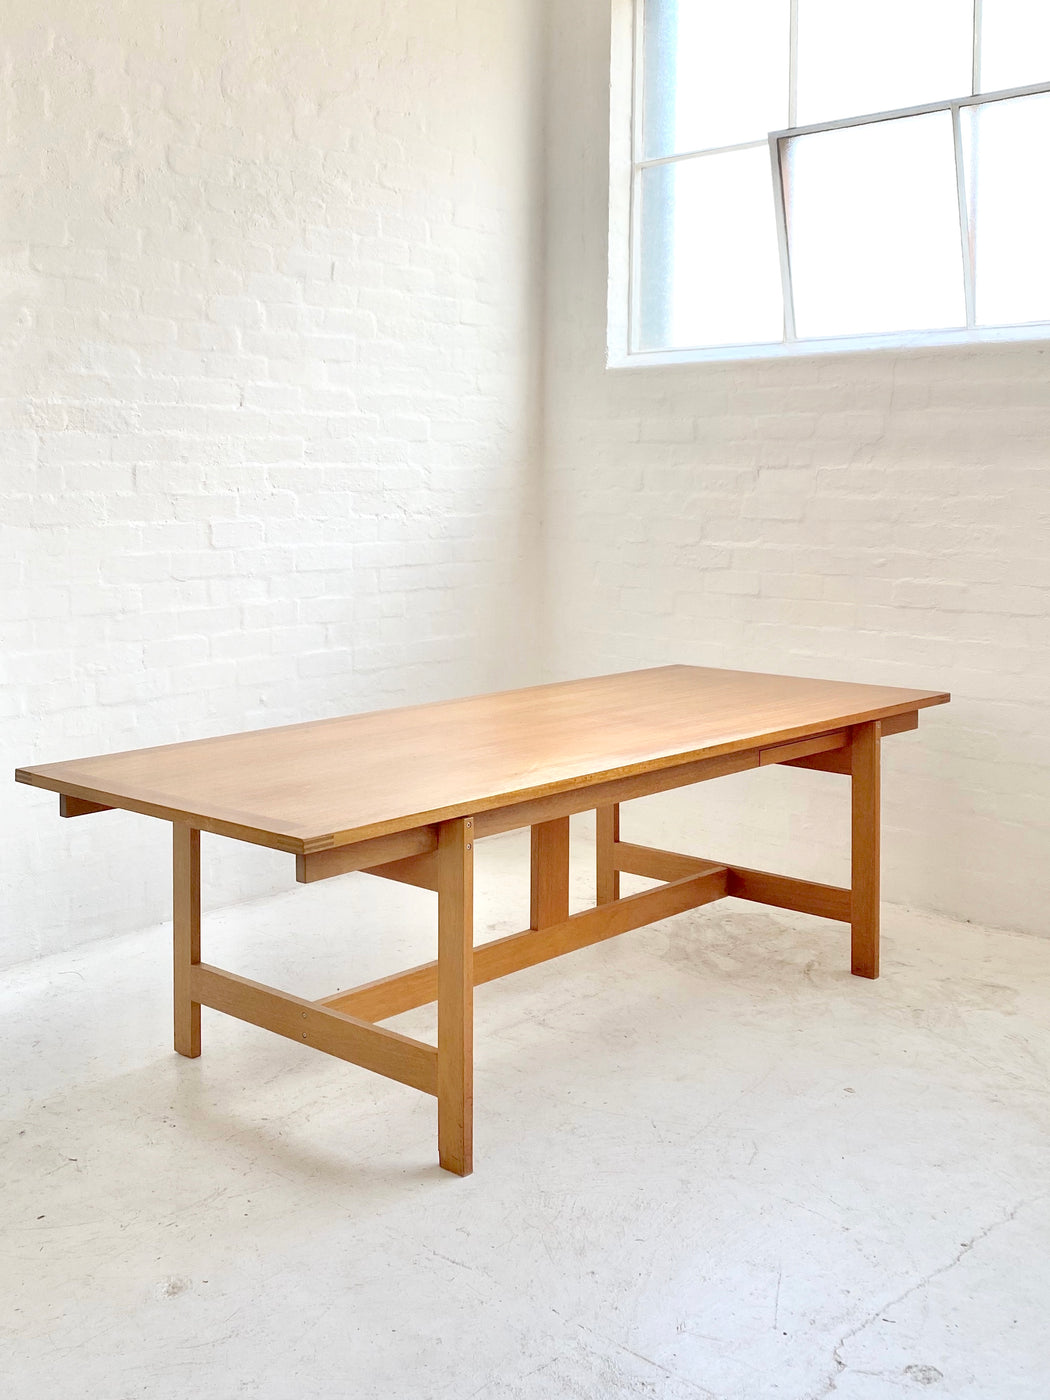 Henning Jensen & Torben Valeur Table